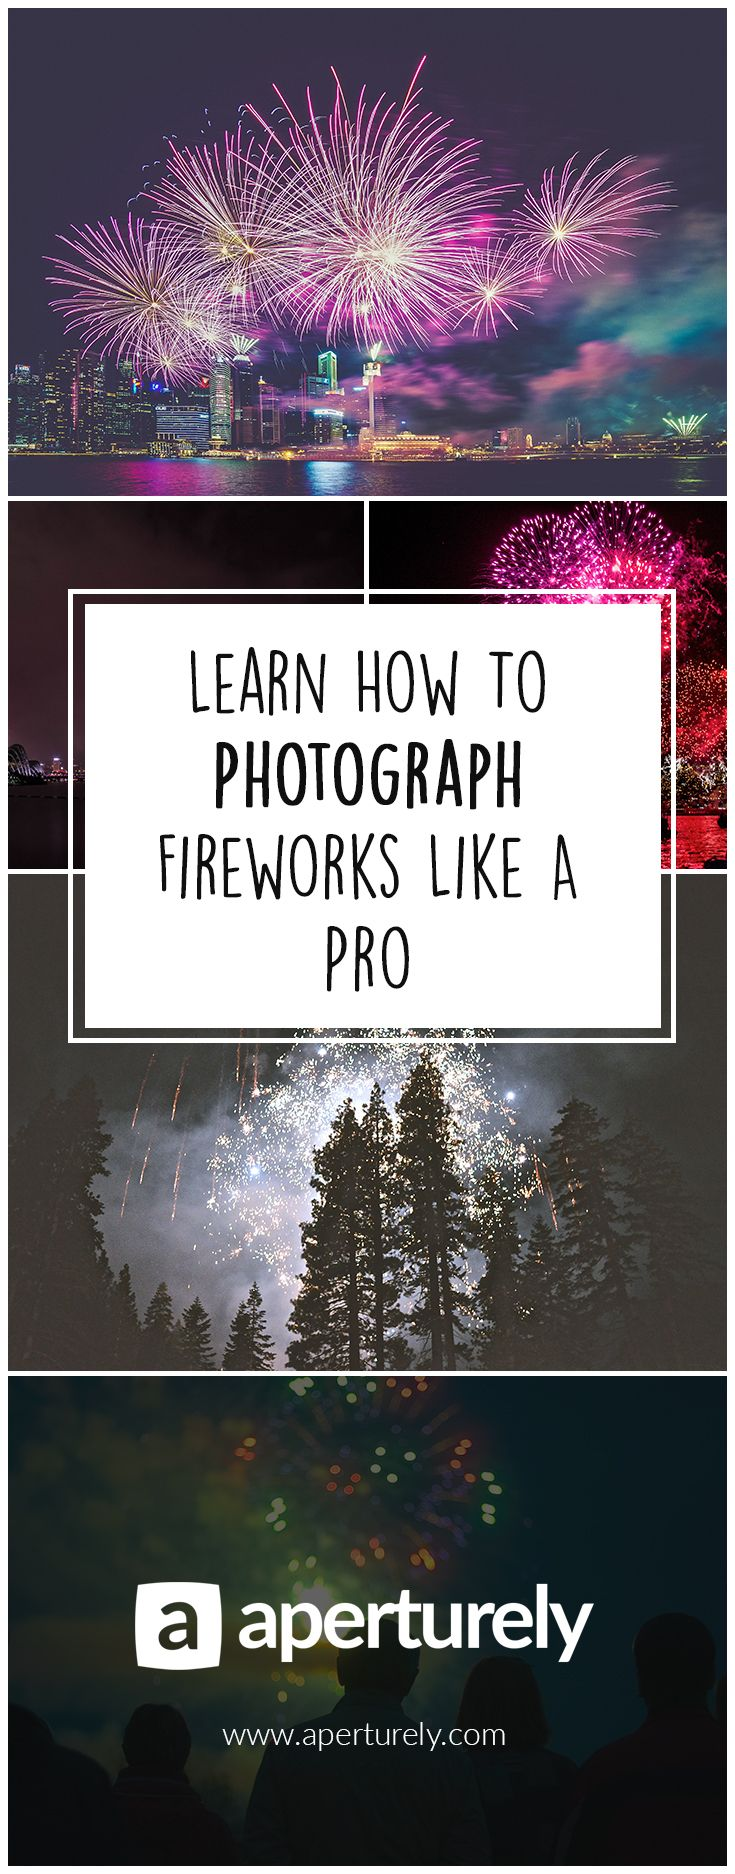 FREE Tutorial - The Massive Guide To Photographing Fireworks. Learn Today.